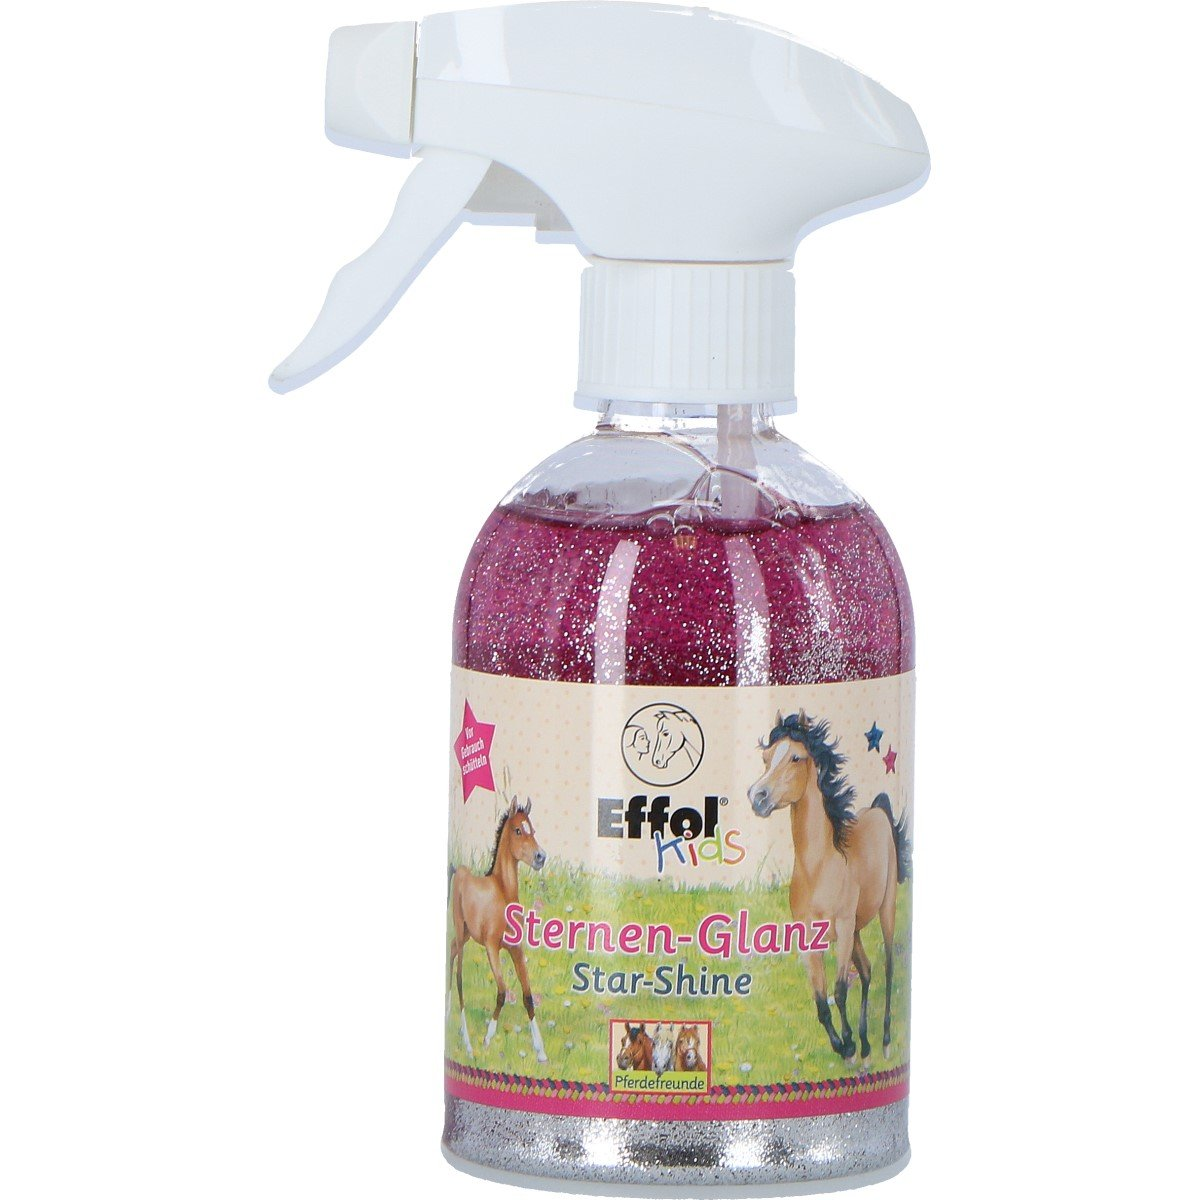 Afbeelding van Effol Glanslotion Kids Sternen glanz Glitter 300ml